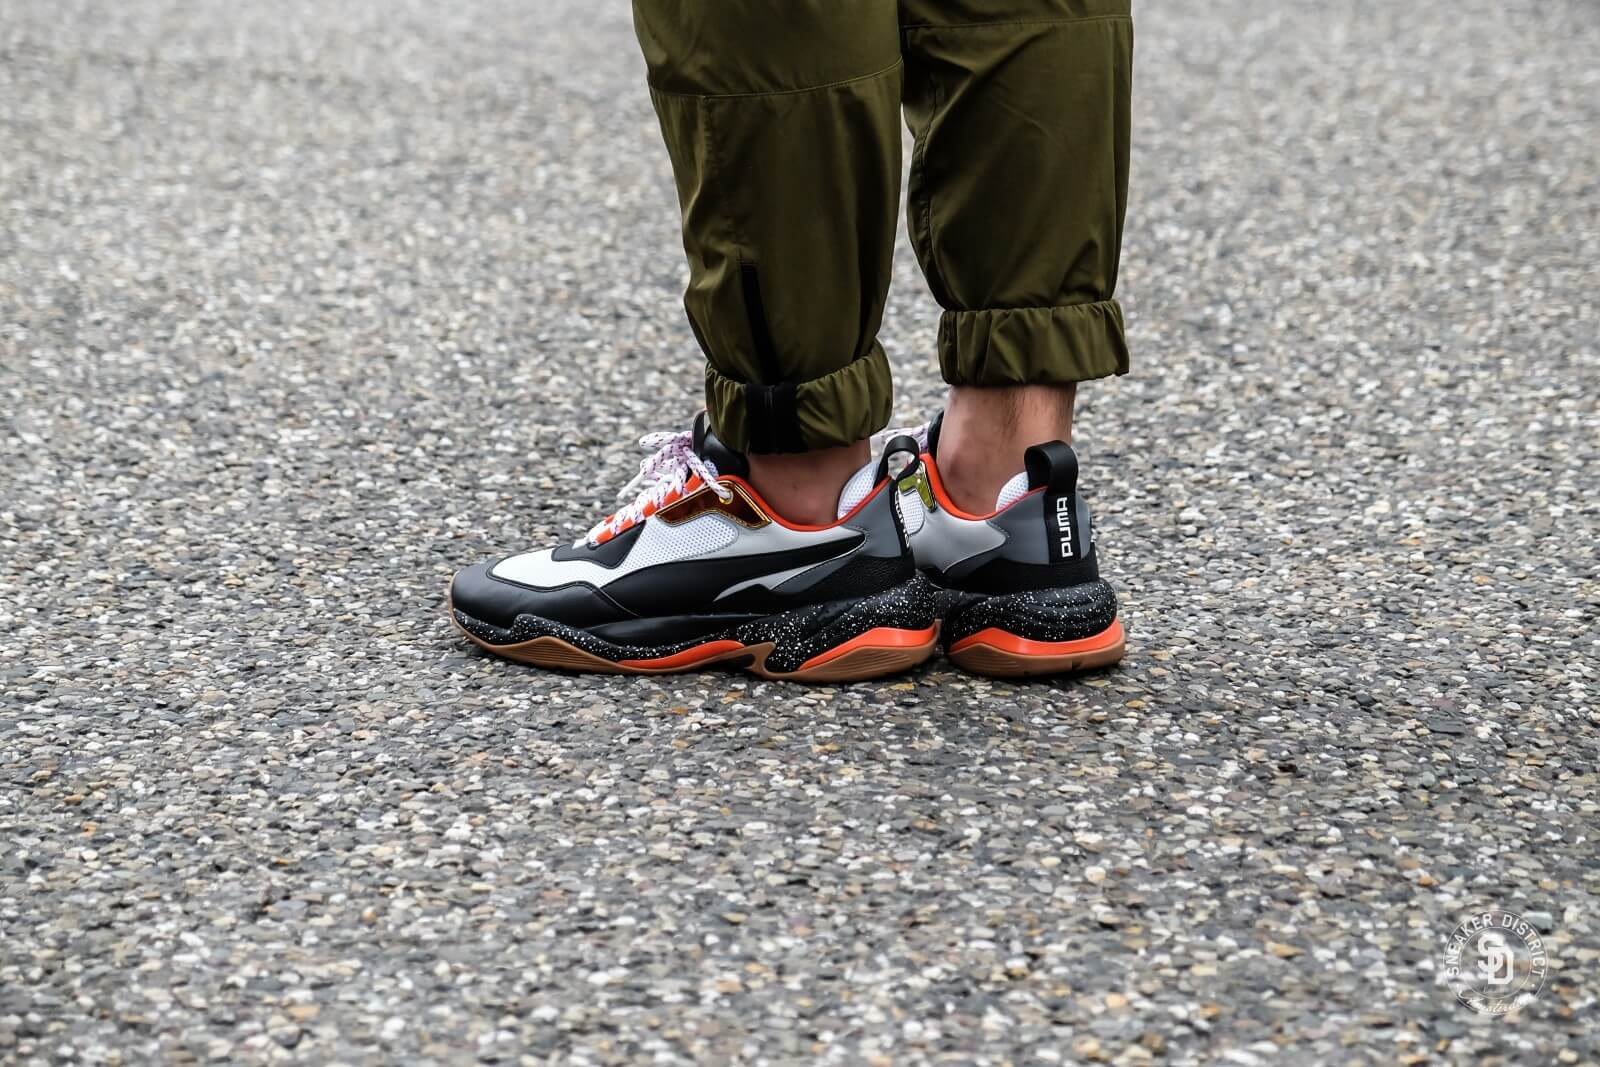 Puma Thunder Electric White Black/Mandarine Red - 0367996-01